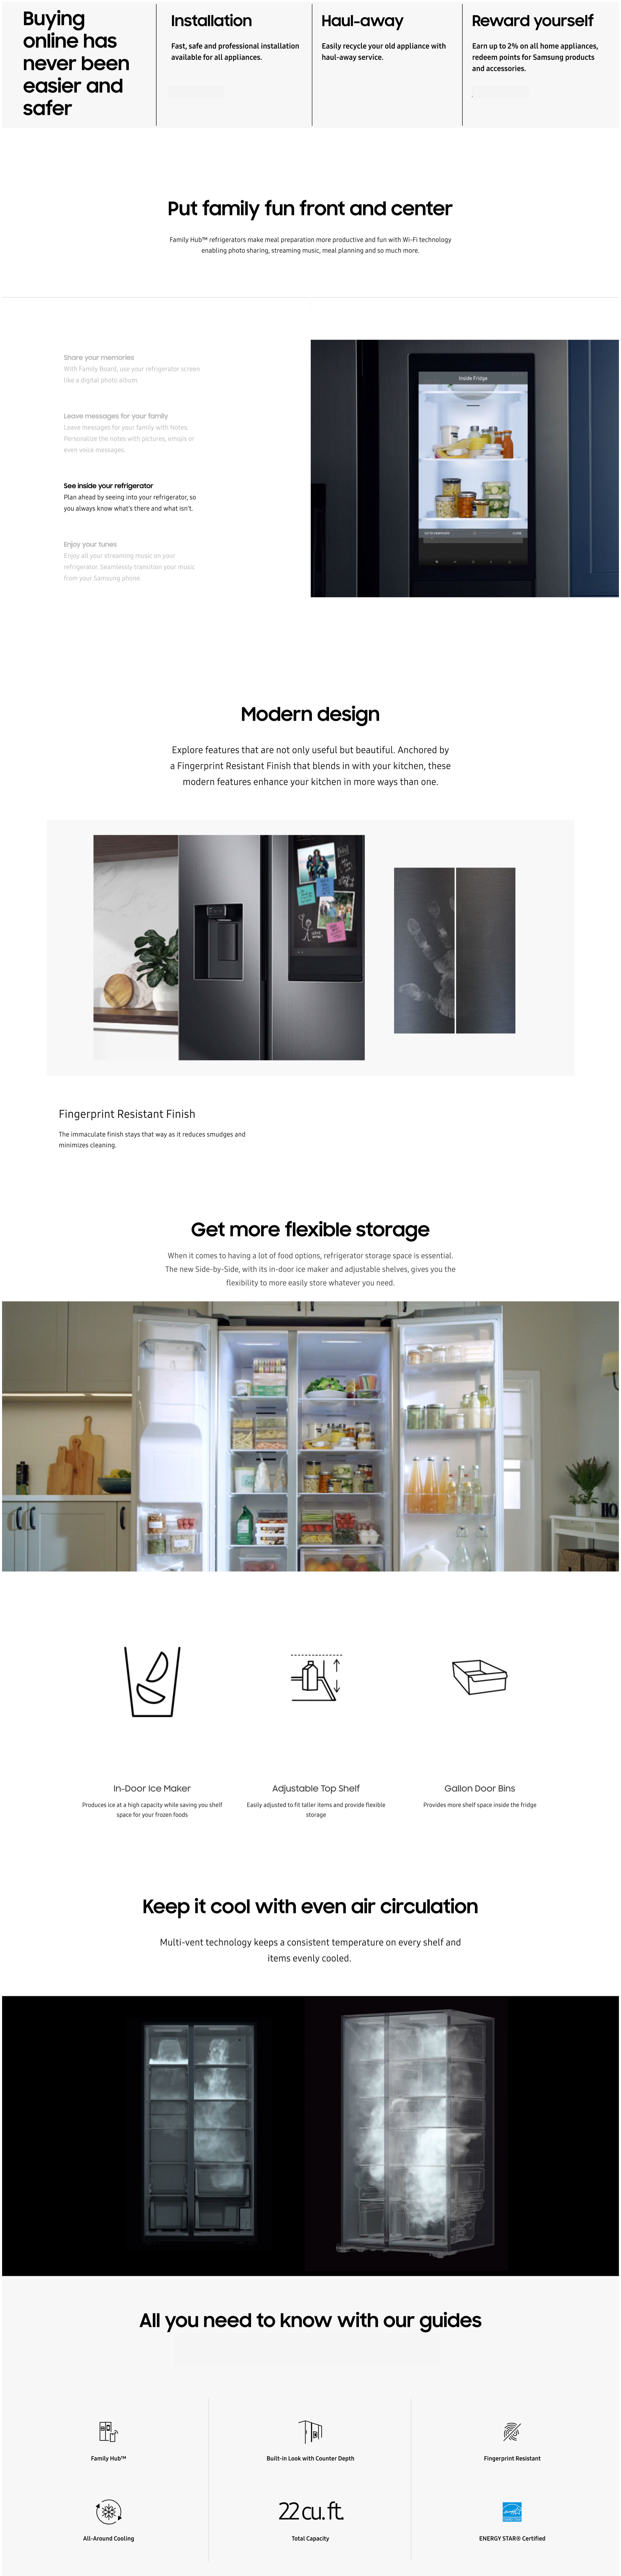 screencapture-samsung-1us-home-appliances-refrigerators-side-by-side-22-cu-ft-counter-depth-side-by-side-refrigerator-in-stainless-steel-rs22t5201sr-aa-2020-04-18-19-45-52.jpg